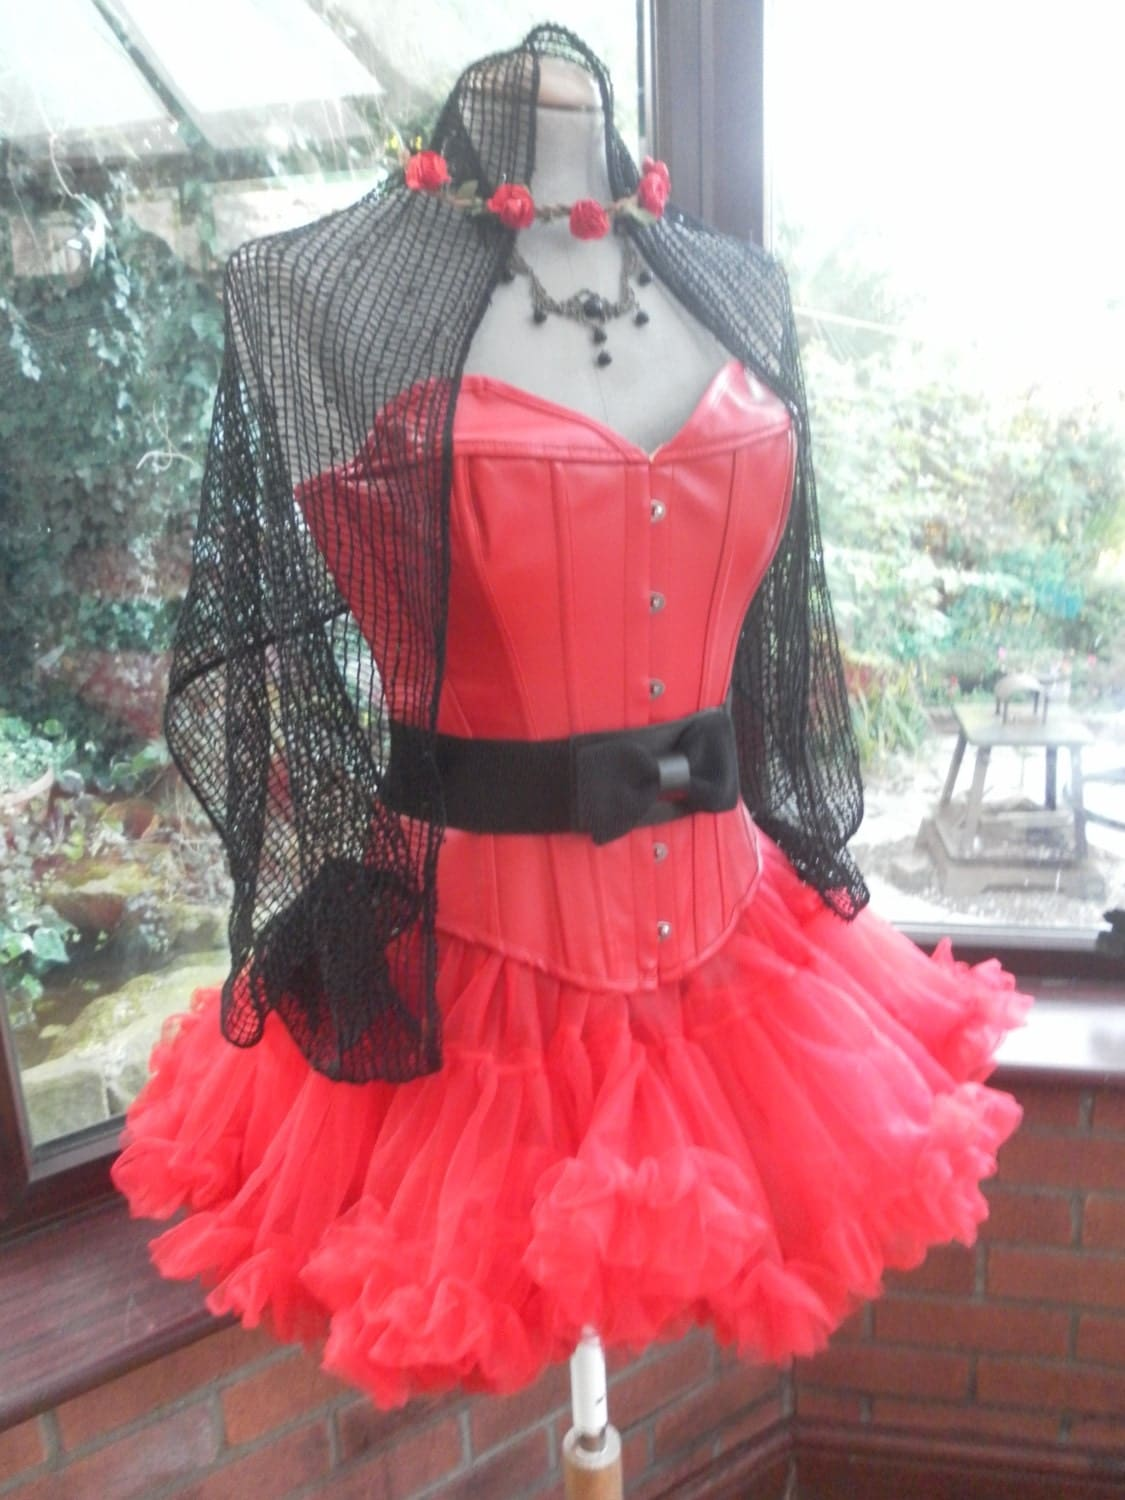 satin lace up corset short frilled tutu skirt sparkly black net veil red flower circle head dress black choker necklace  elasticated belt